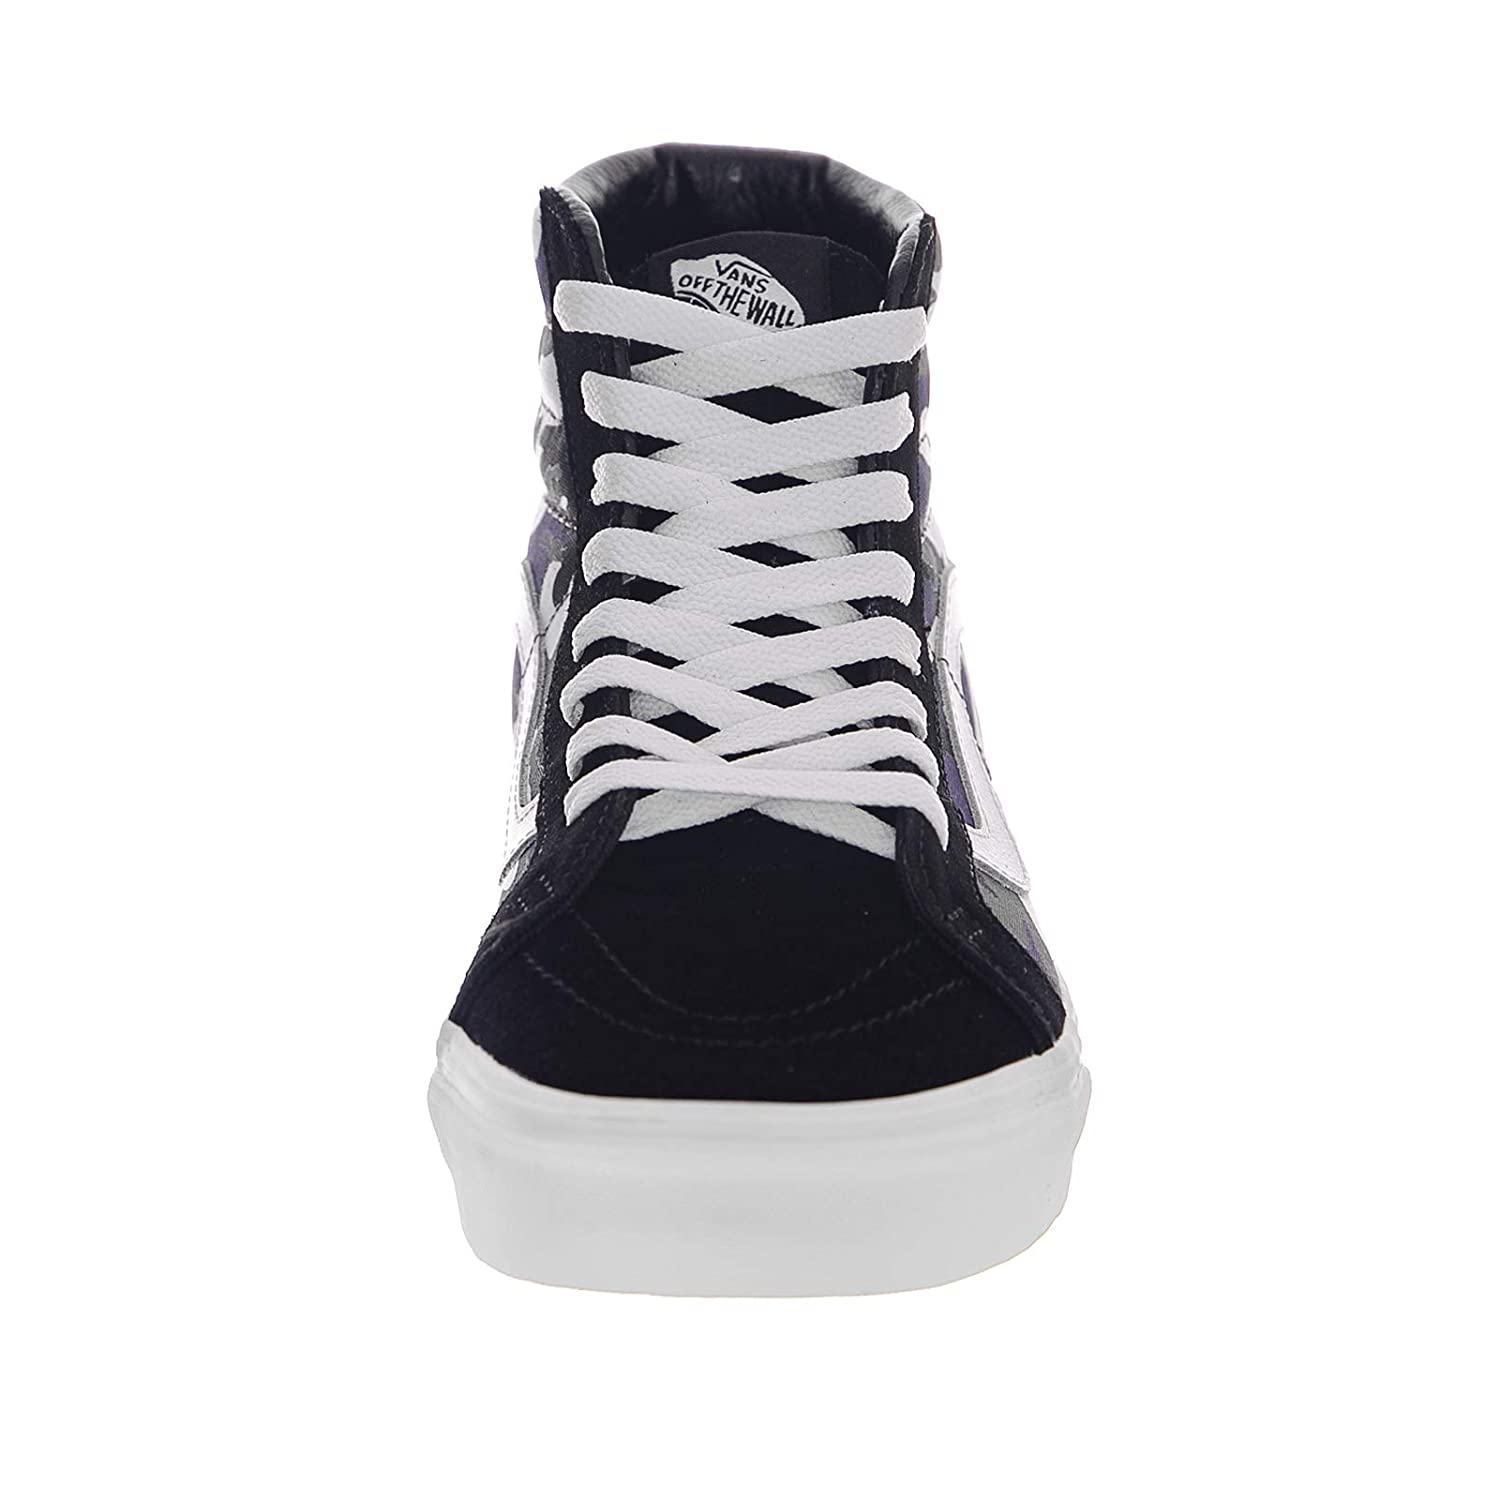 Vans - Trainers - UA SK8-Hi Reissue (Pop Camo) - Black Heliotrope True  White  Amazon.co.uk  Shoes   Bags 5a66aca8a